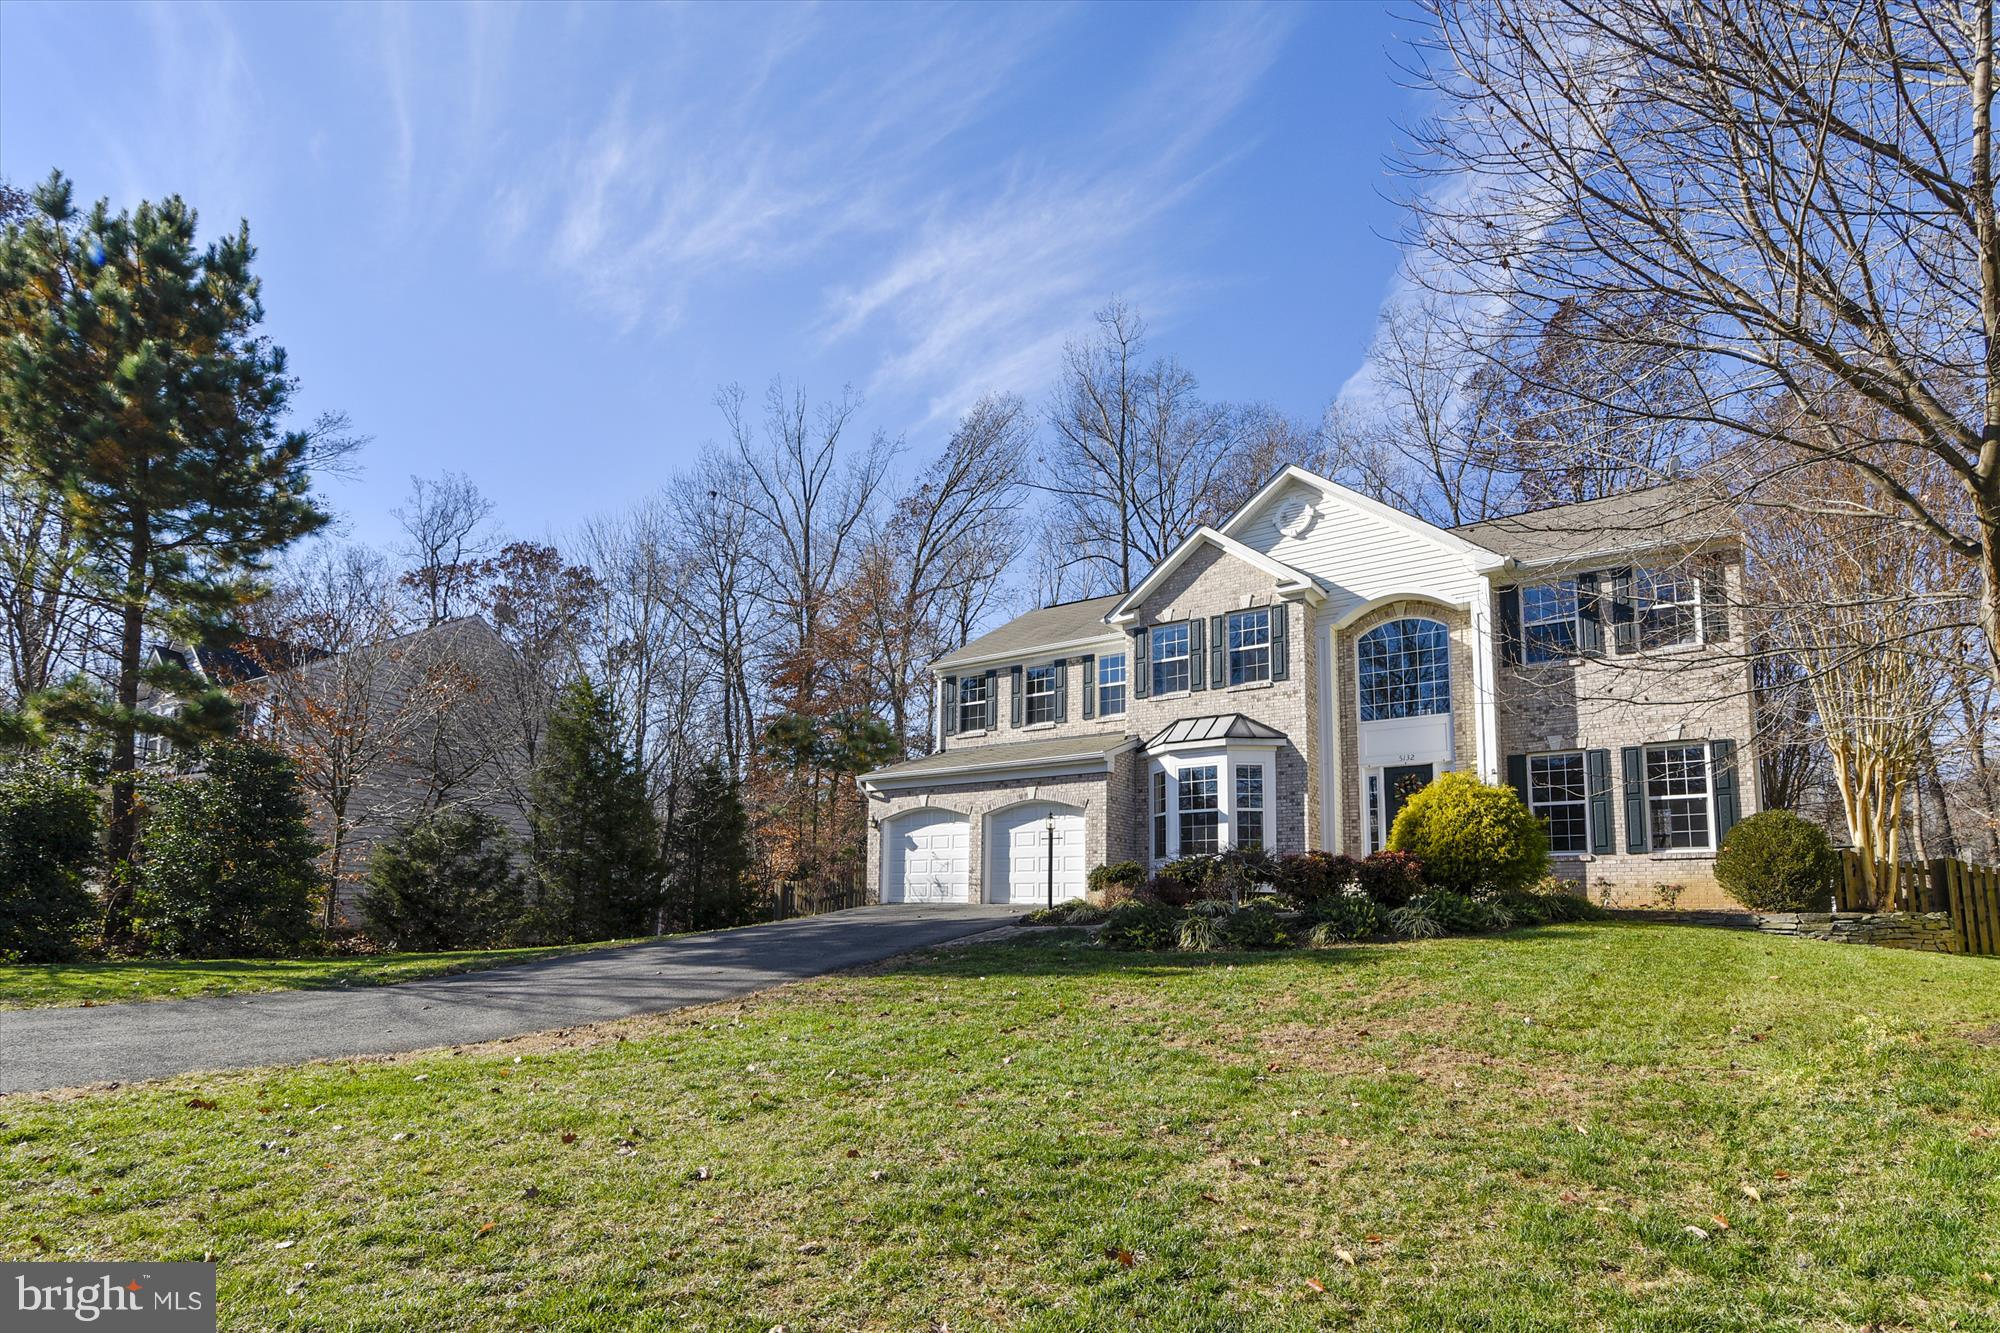 Value Opportunity - This lovely and warm 3-level colonial in desirable Saratoga Hunt has terrific curb appeal!  Built in 2005, with 4856 total square feet, this pretty home has it all.  The large front yard is bordered by trees and other lovely landscaping accentuated by a stone walk way to welcome you home.  A 2-car garage has ample parking for 2 cars and extra storage and an entry to the main level laundry room.  On the main floor you~ll find a combination of hardwood flooring, carpeting and ceramic tile throughout.  The Main level boasts giant great room, kitchen with breakfast room, formal living and dining rooms, and a study/office, completed by a single powder room.  Walk out the kitchen area to a spacious deck, with stairs down to a brick patio and rear lawn, bordered by trees and completely fenced in.  This is a pet friendly property that includes dog doors!  Carpeted upper level includes enormous master suite with separate sitting room, master bath with double sinks, large shower and separate spa tub, and walk-in closets.  You~ll find three other generously-sized bedrooms on this level, and the main hall bath also has double sinks.  The two-story foyer is overlooked from this level.The finished lower level includes a very large recreation room to hold all the toys, plus a large fitness room, and a 3rd full bathroom.  A large unfinished space with doors makes for great storage.Visit our virtual tour for additional photos, floor plans, dimensions and more.